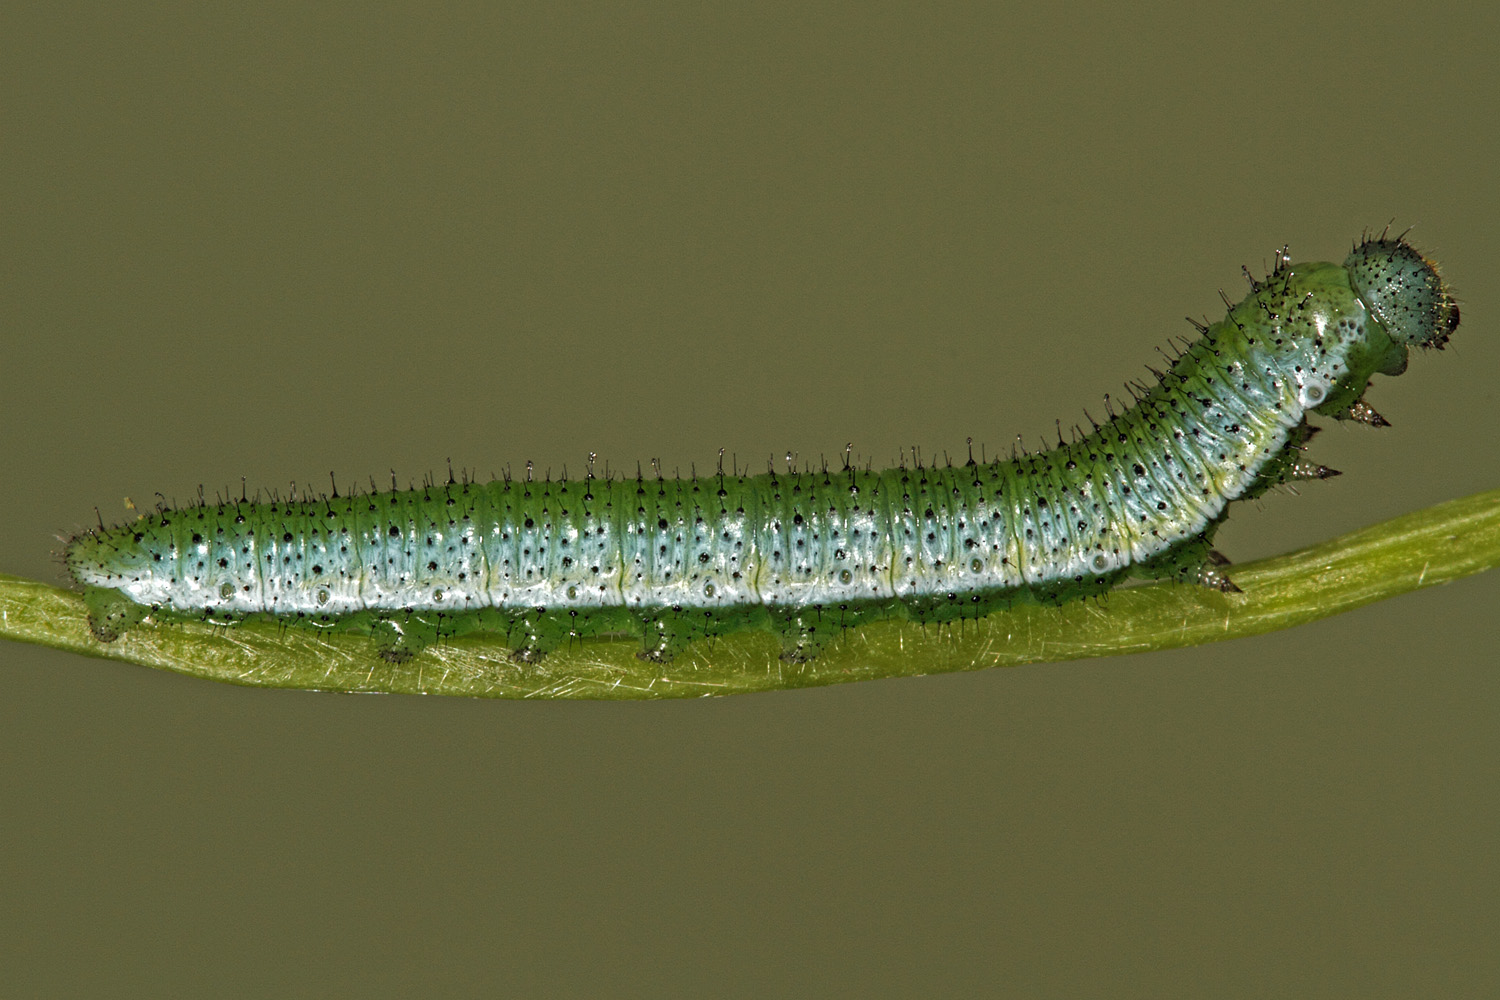 Mature larva